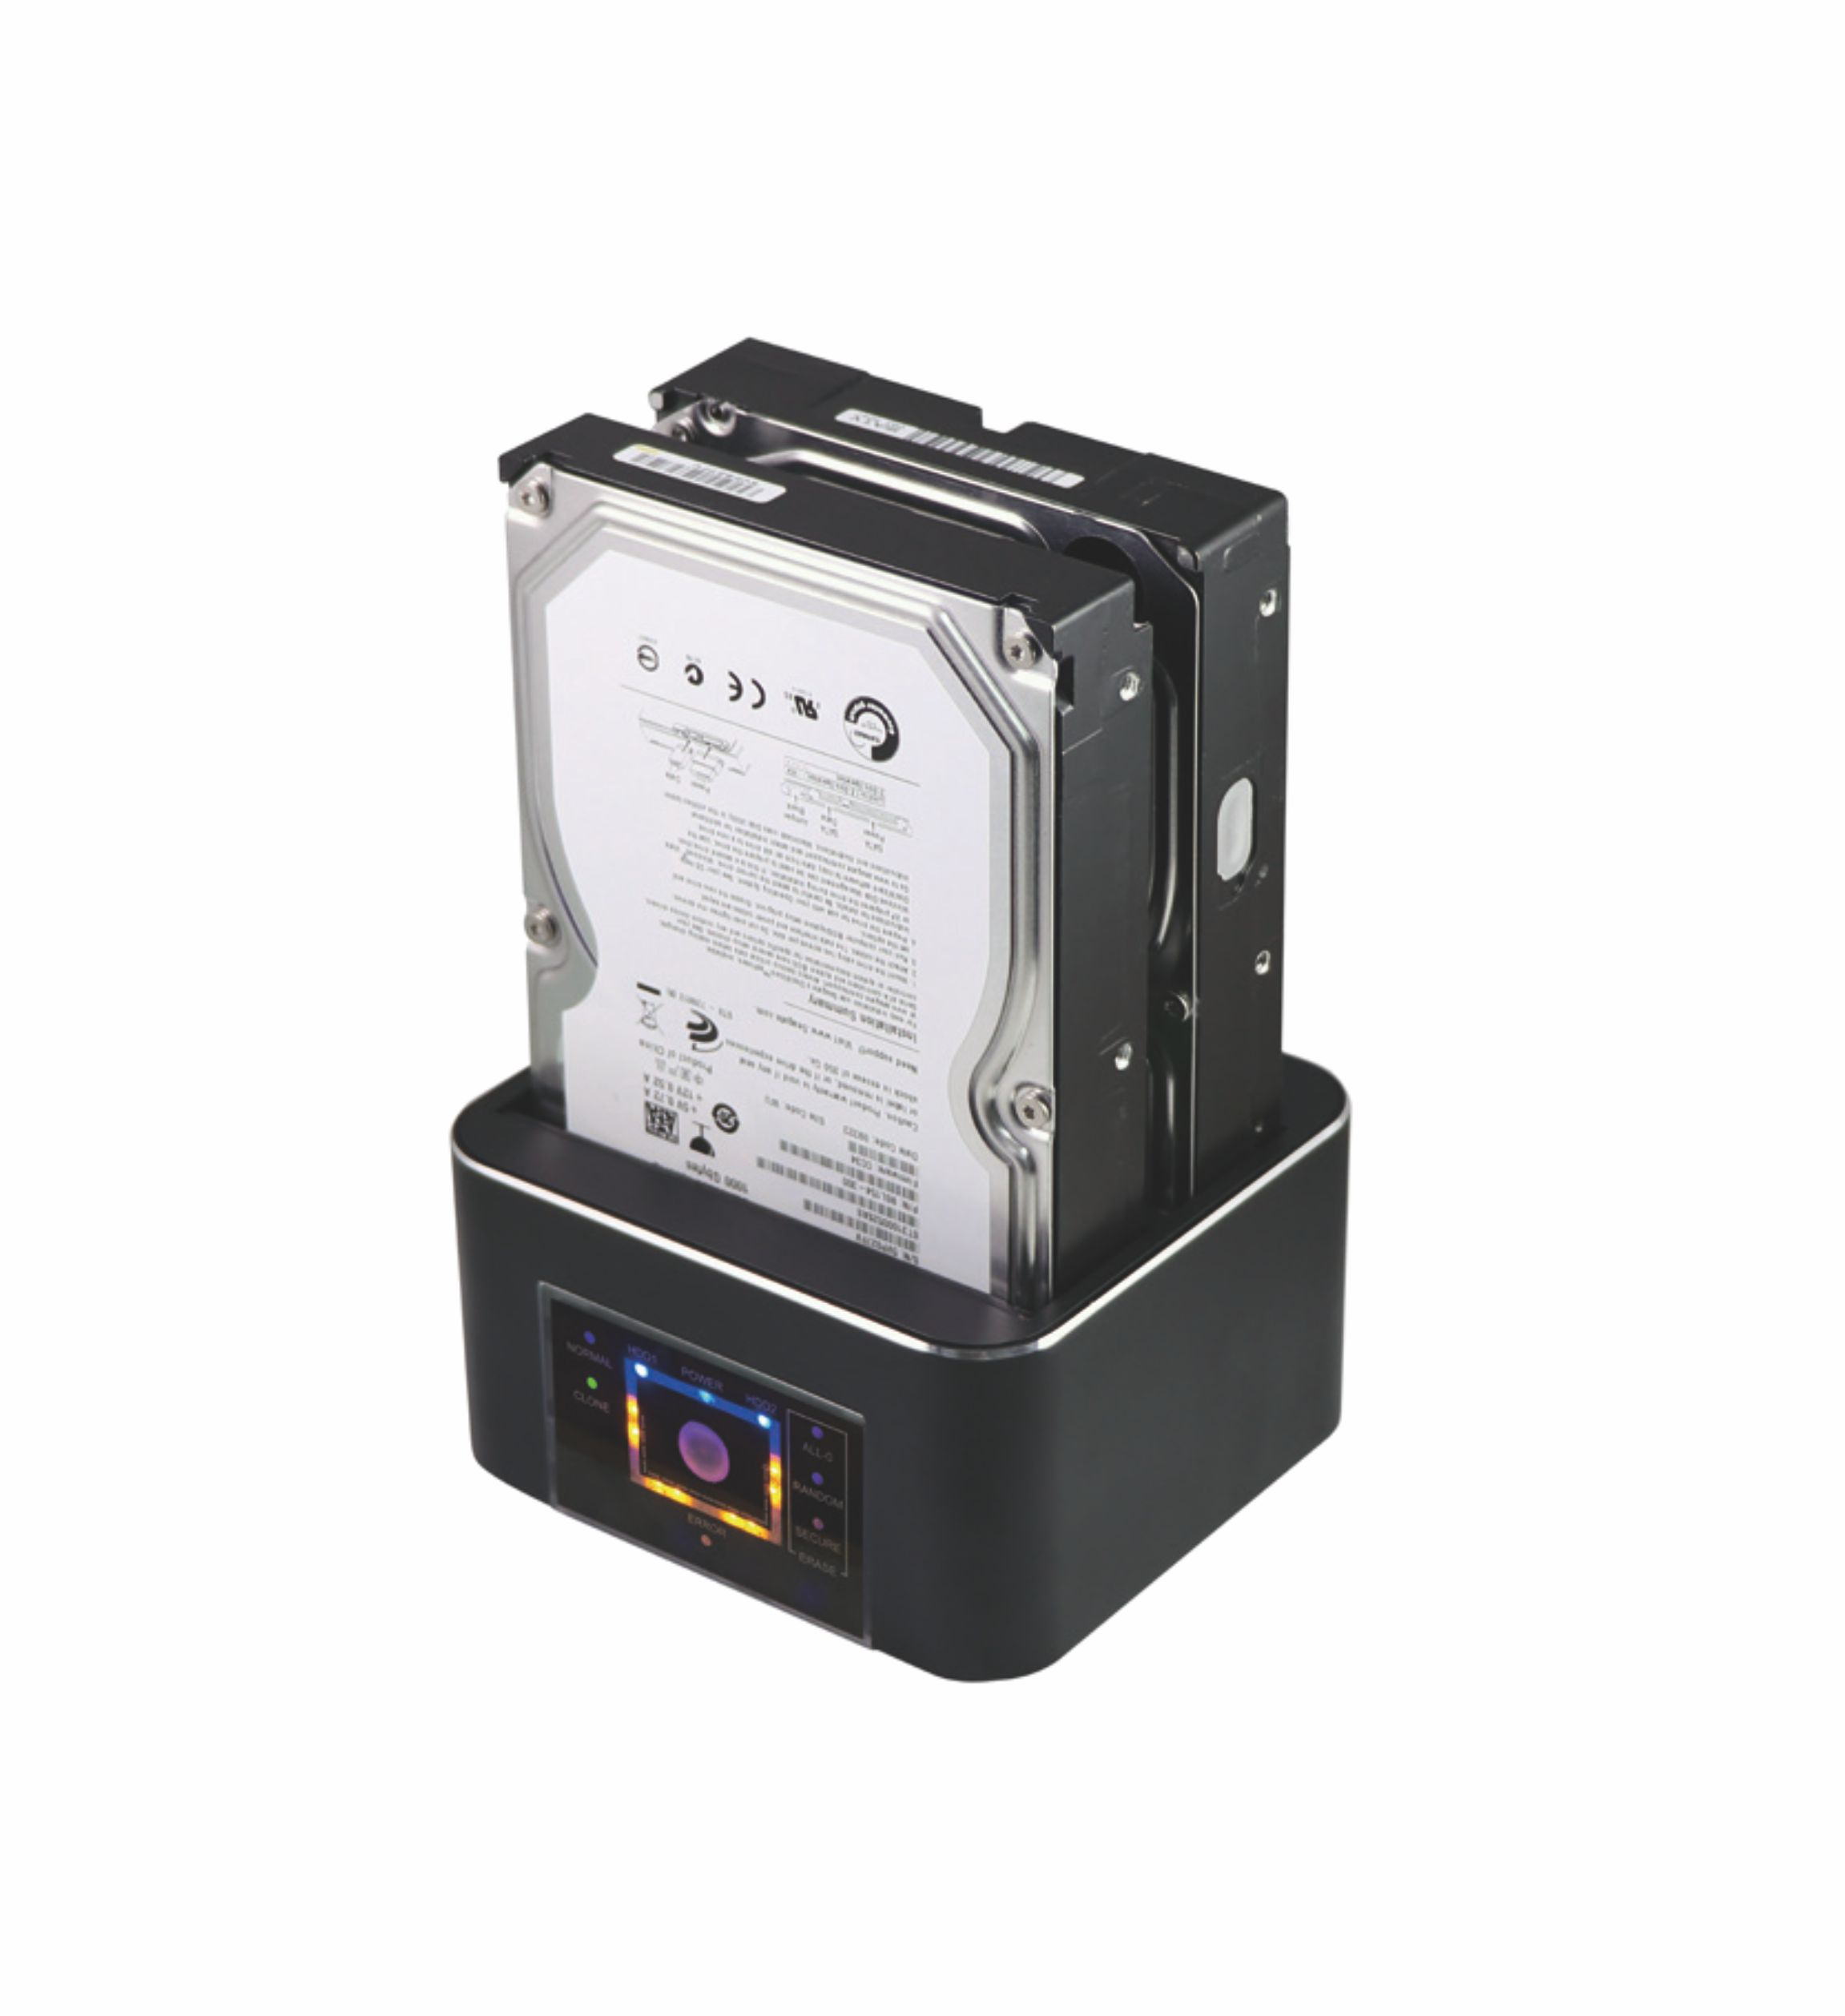 factory 3bay sata hdd docking station with clone and erase